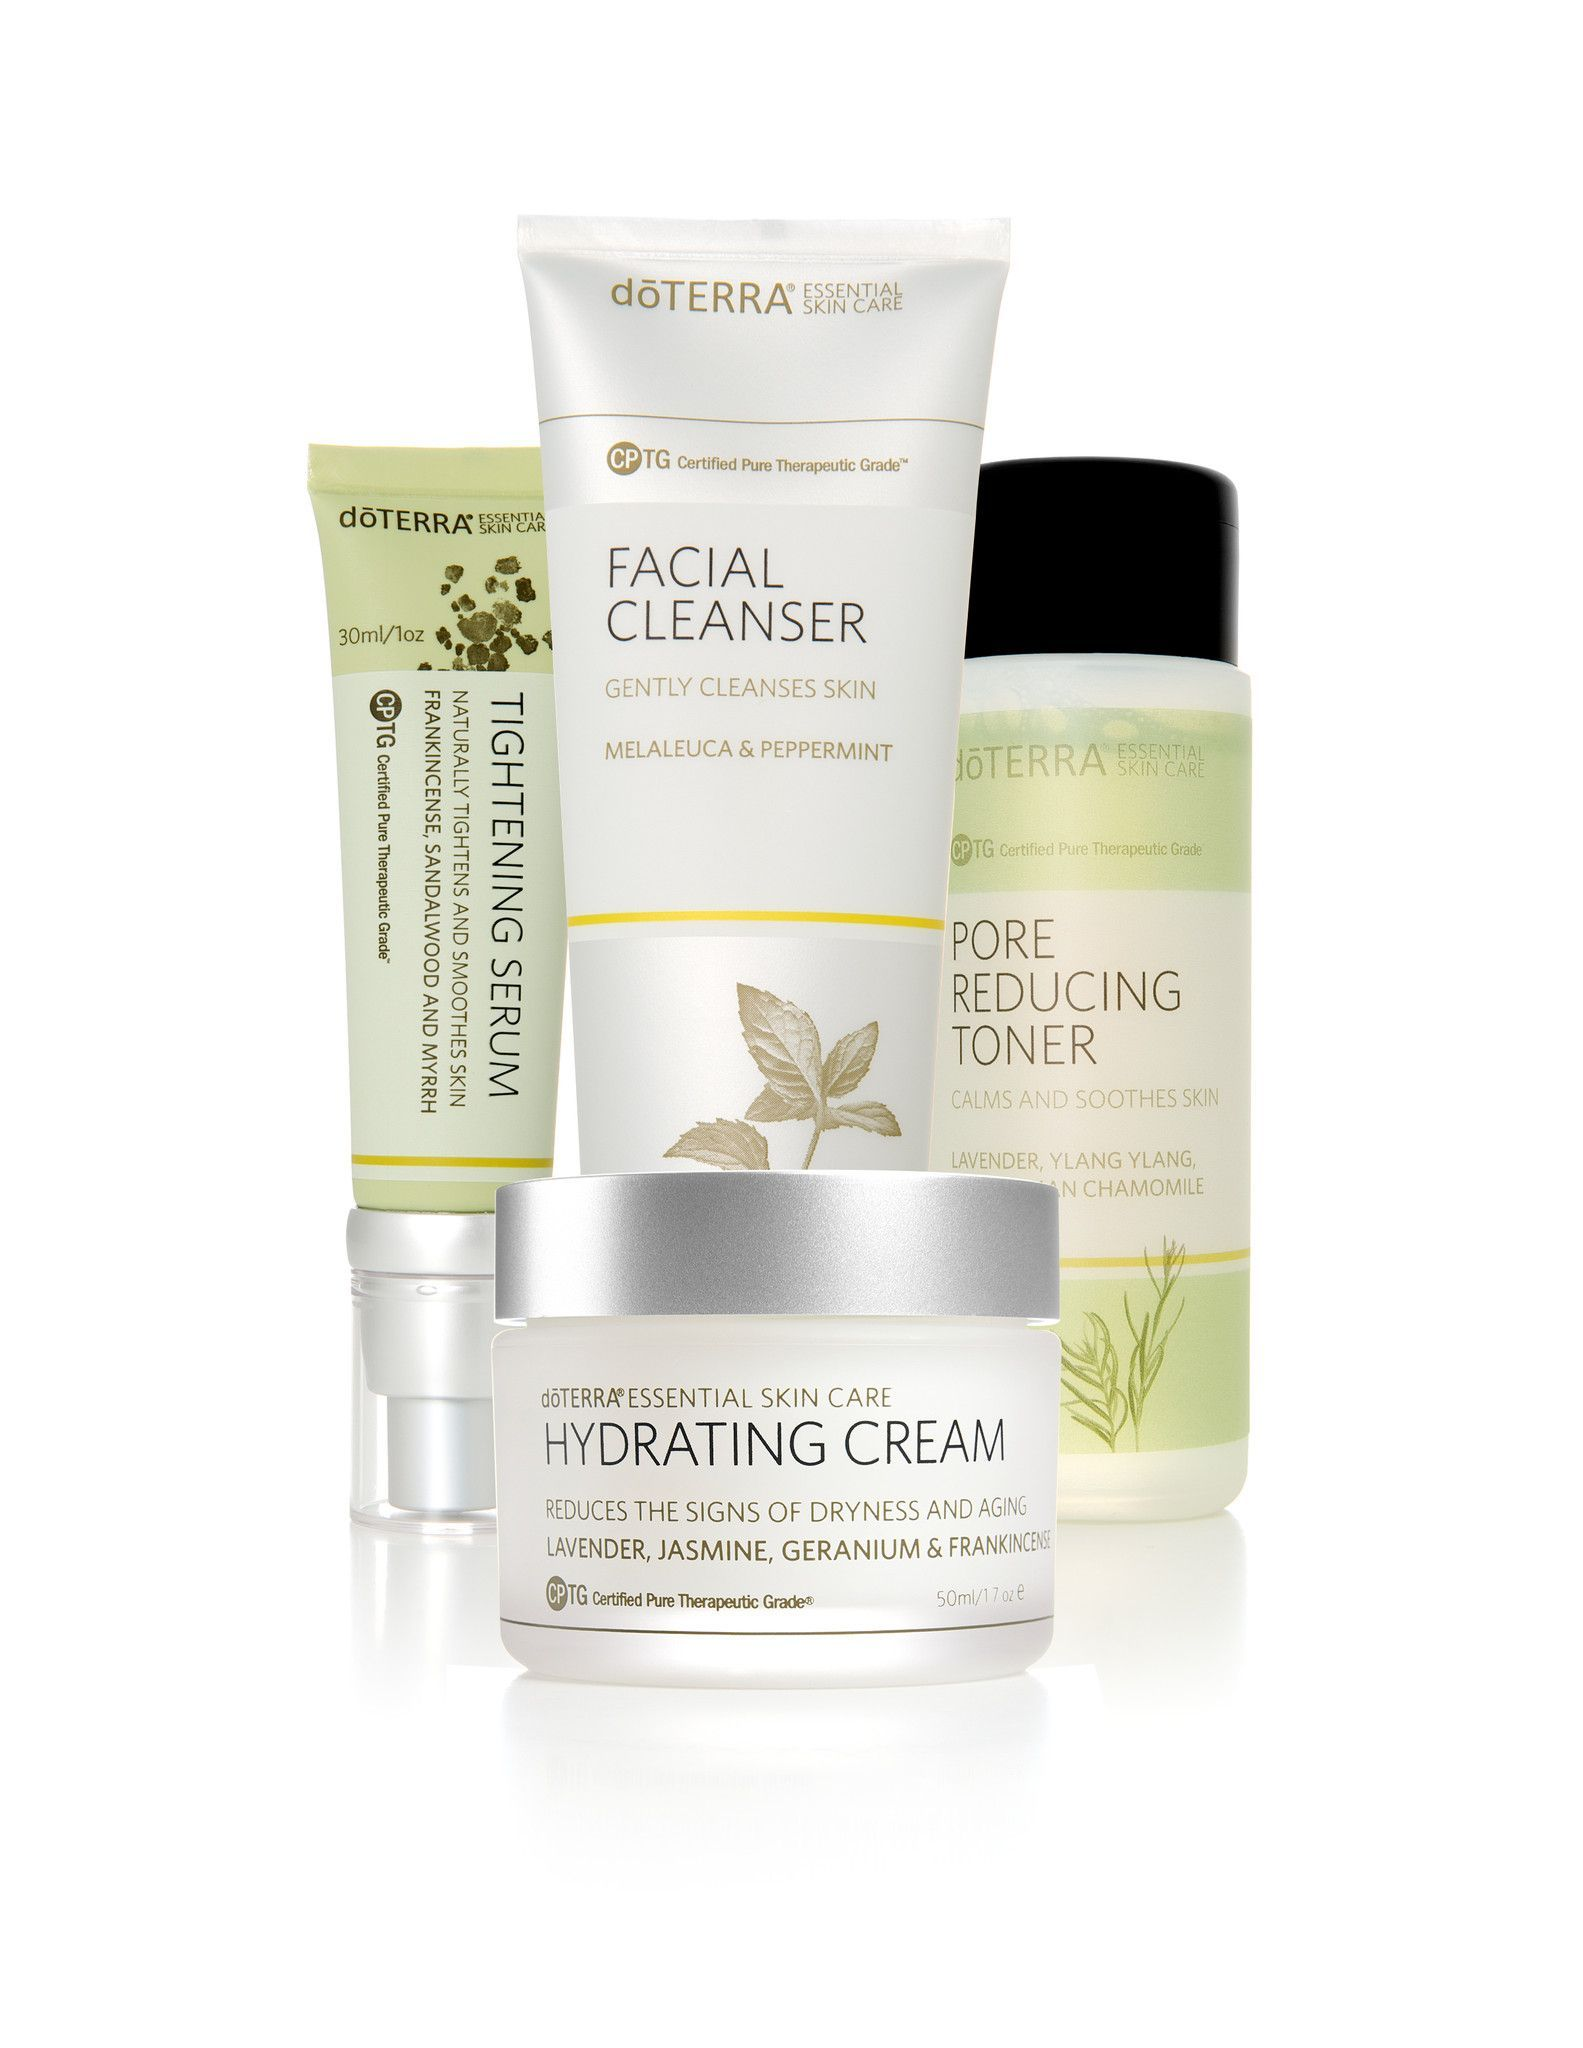 Skin Care System With Hydrating Cream Skin Care System Skin Care Essentials Hydrating Cream